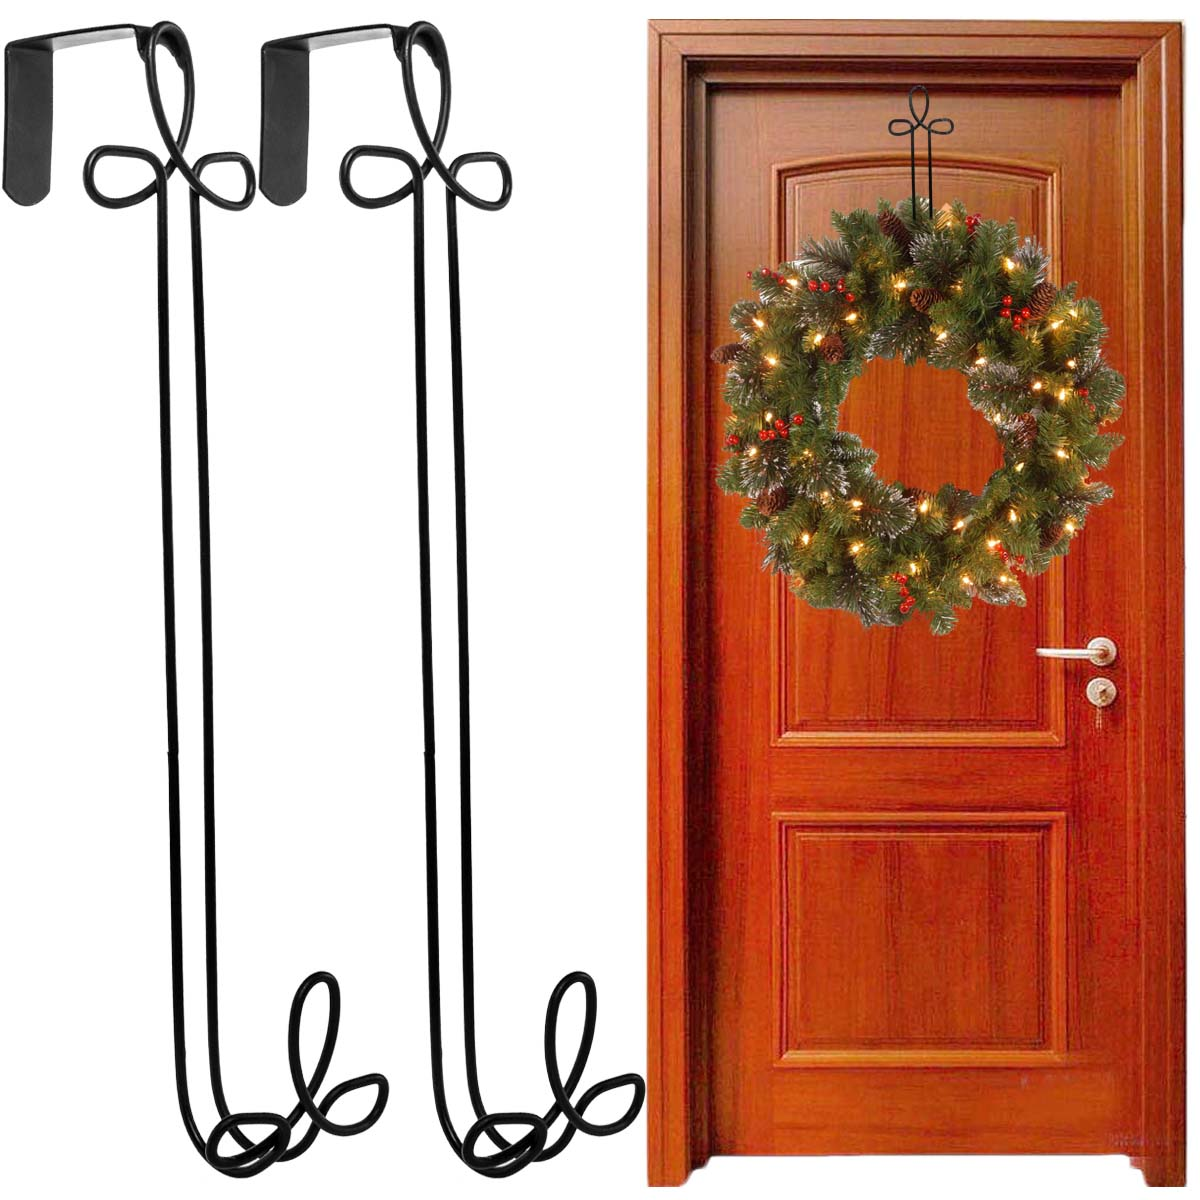 Panacea (2 Pack) Over The Door Holiday Wreath Hangers Black Metal Décor For Outdoor Decorations